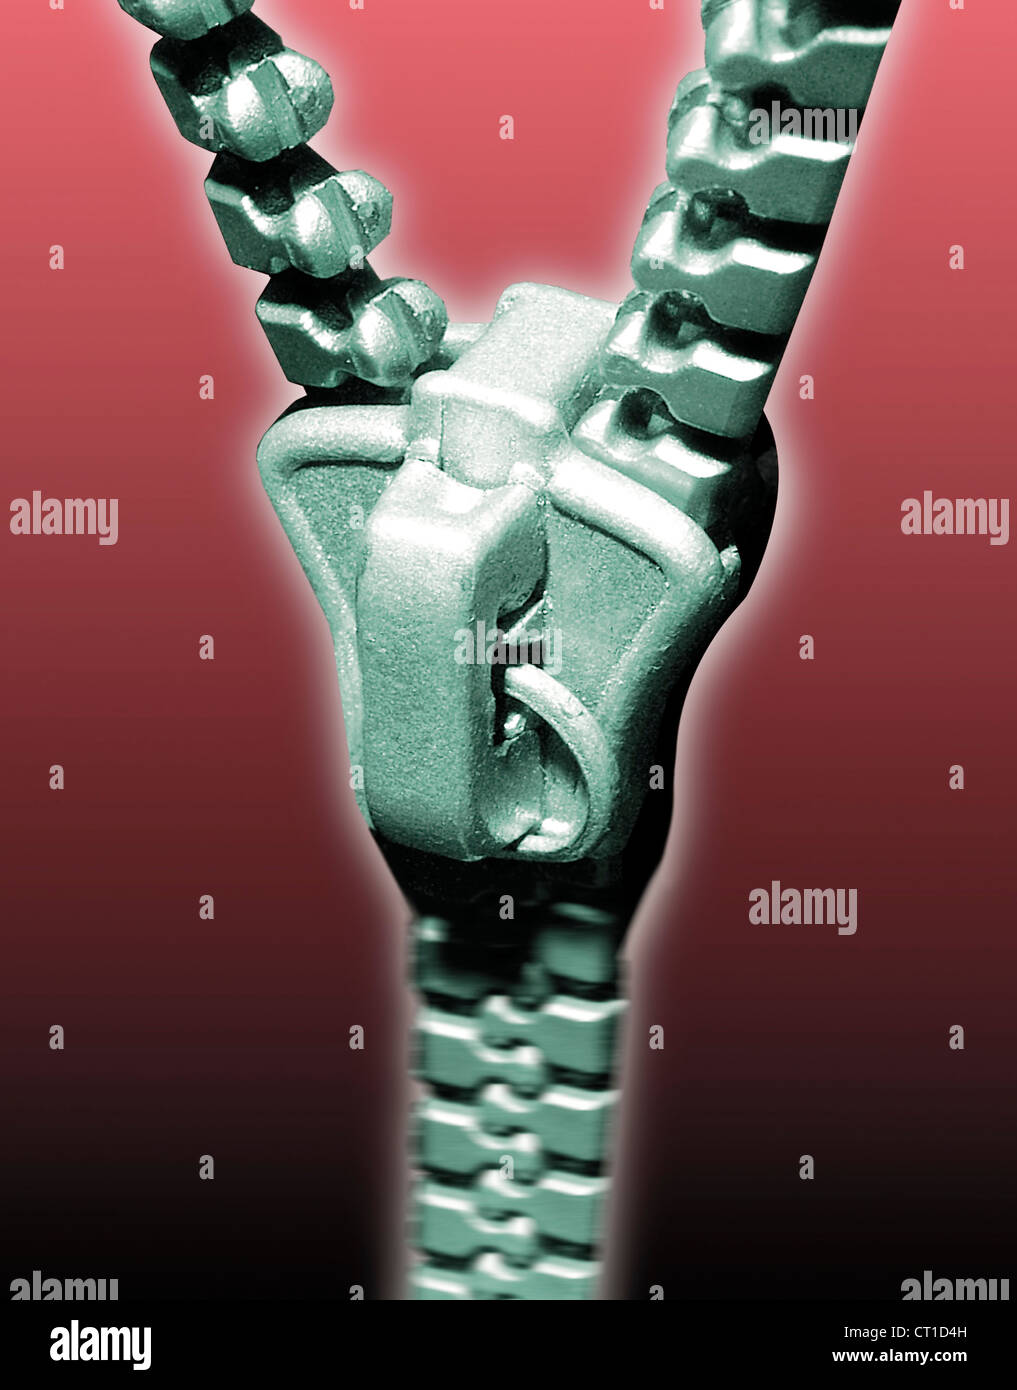 zipper half closed as a synonym for integration - Stock Image